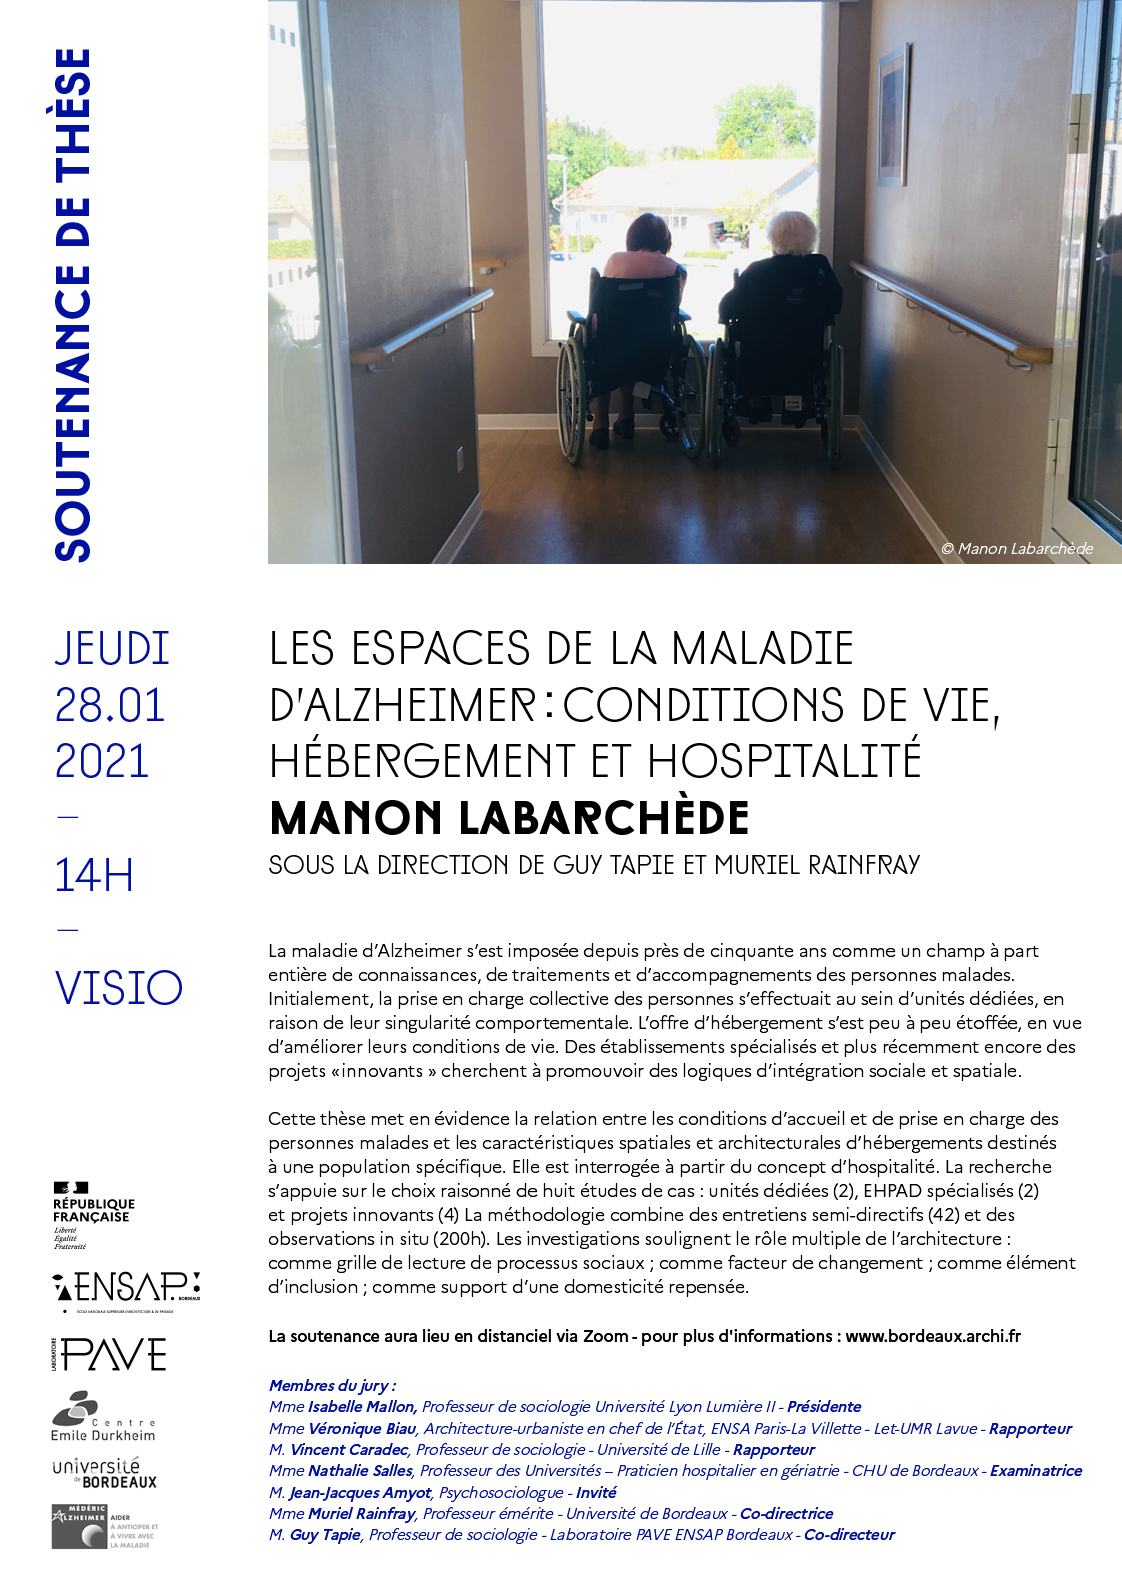 affiche these manon